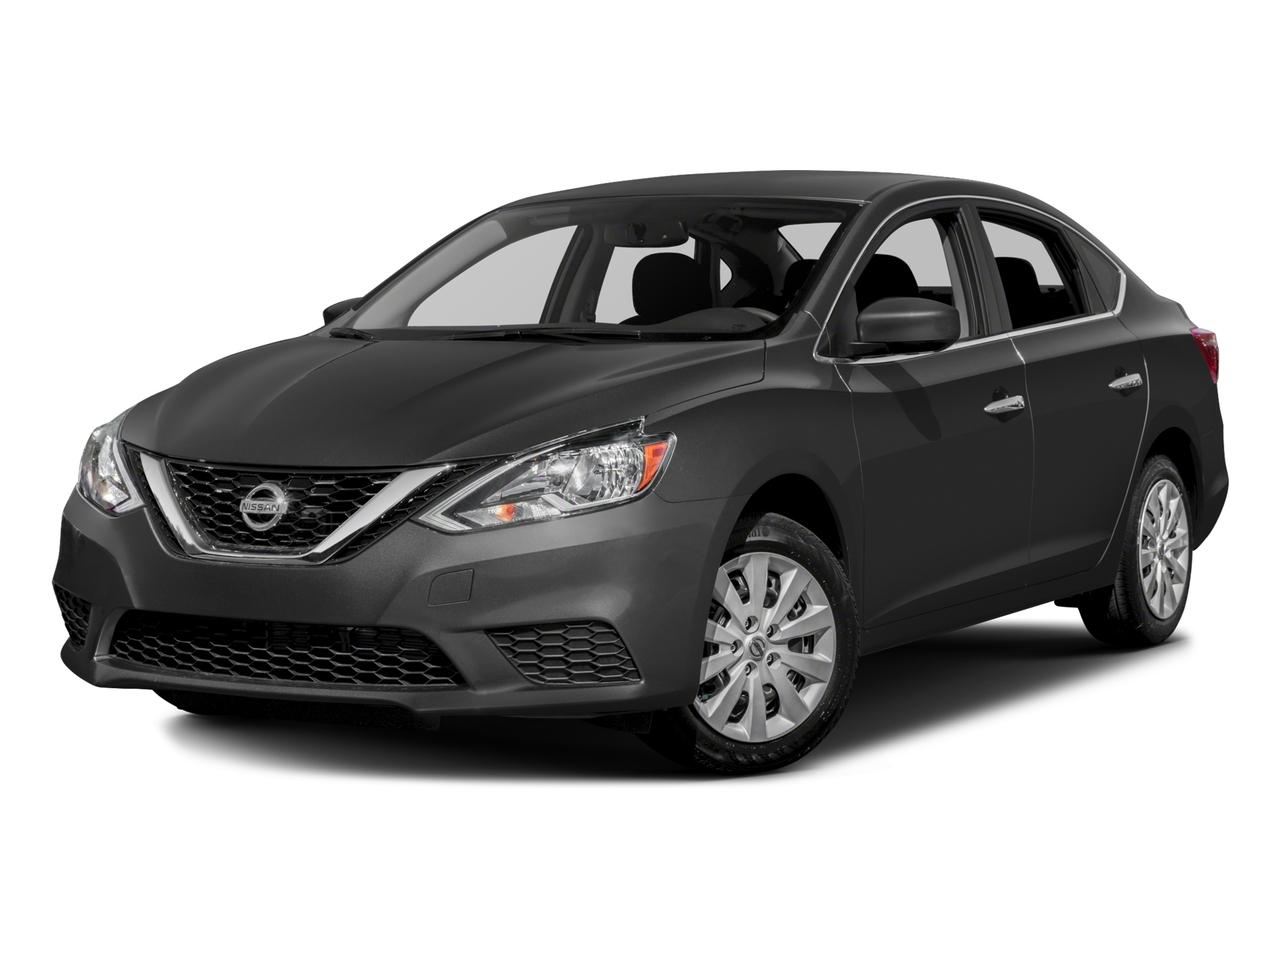 2018 Nissan Sentra Vehicle Photo in BEND, OR 97701-5133